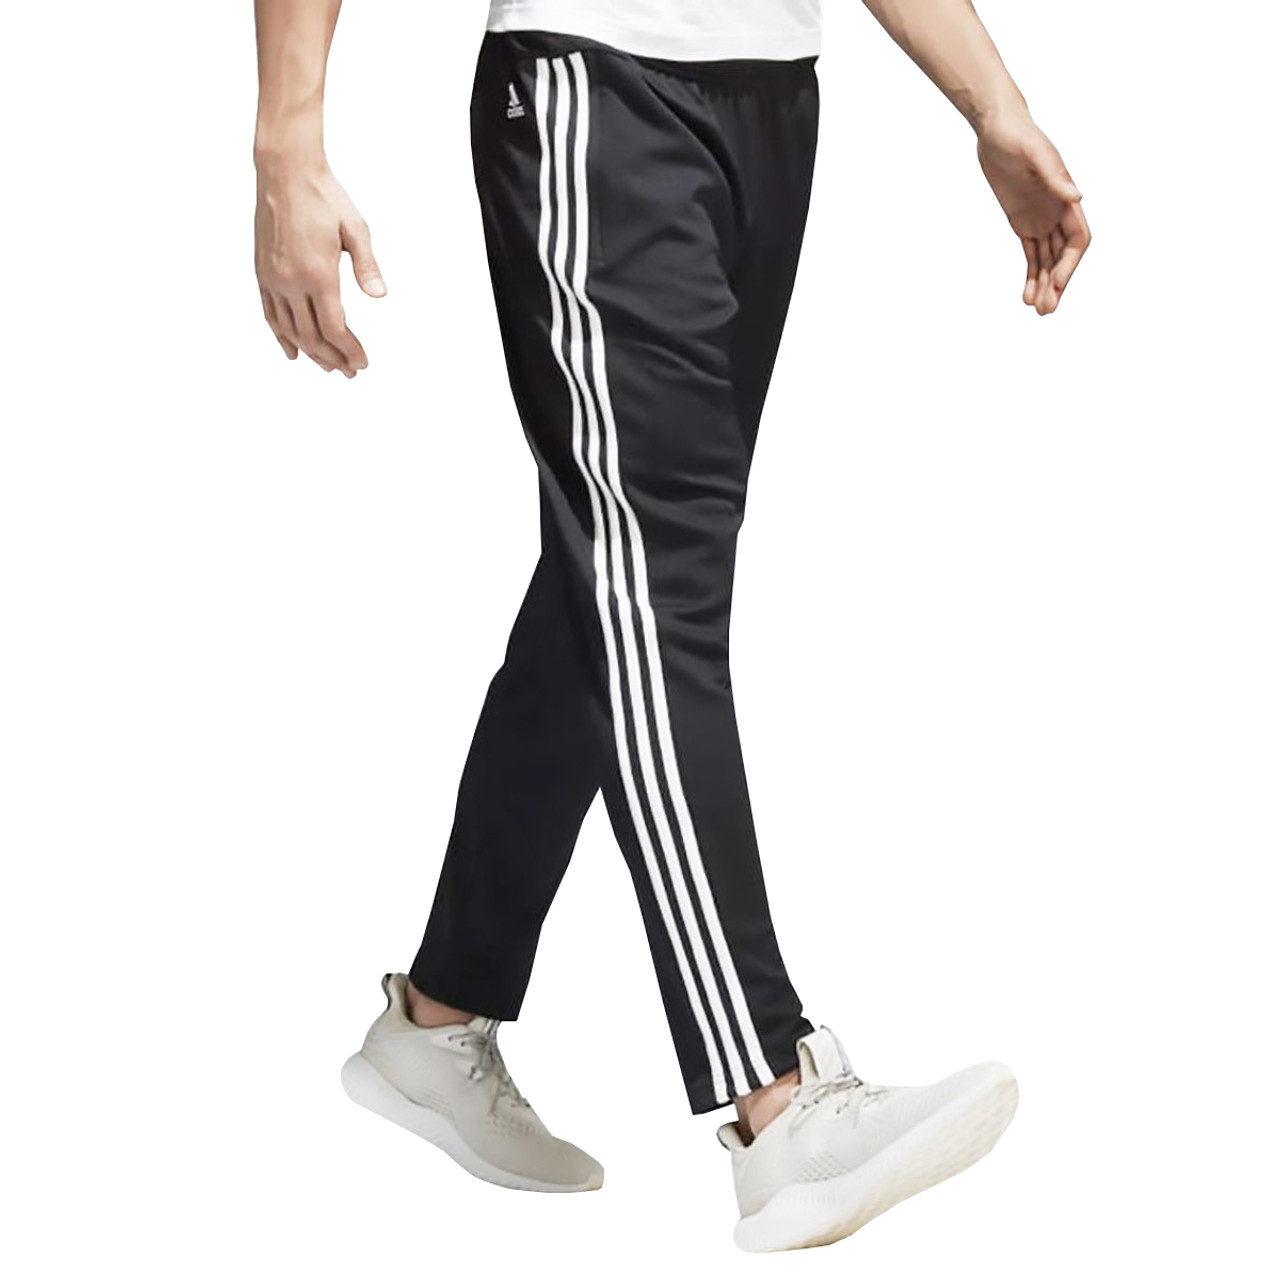 lower price with factory authentic cheap Adidas ID Striker Men's Pants CG2117